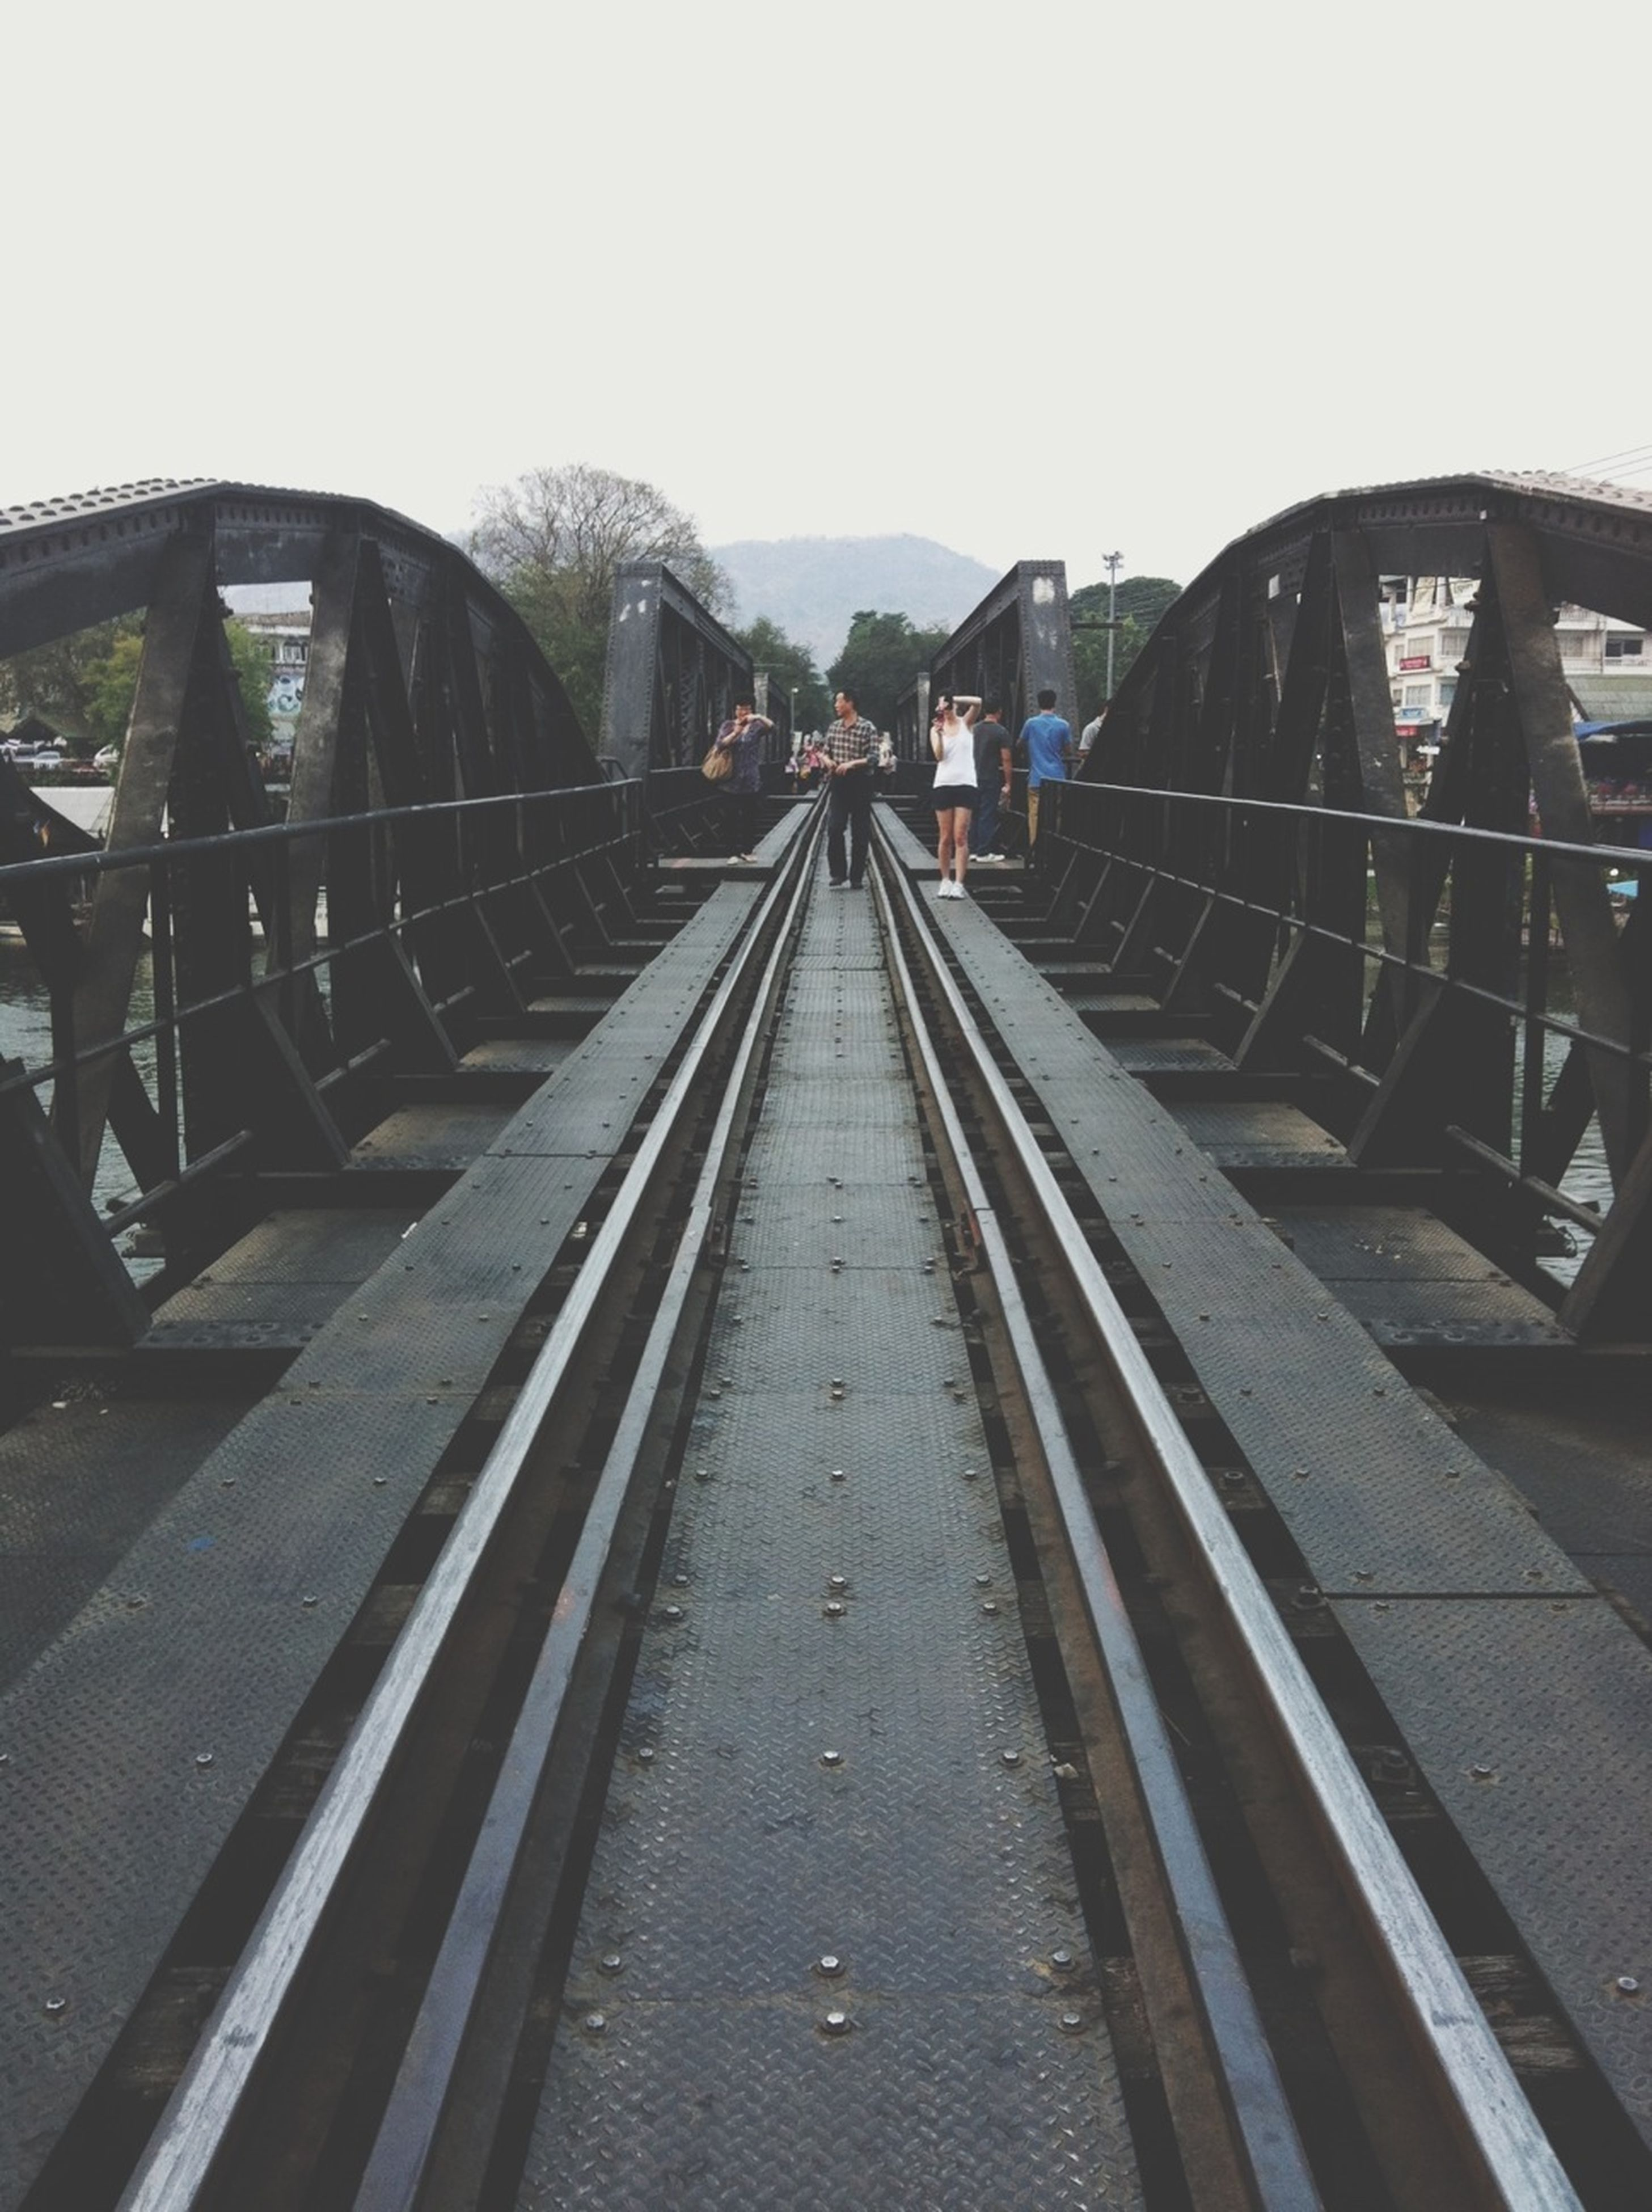 transportation, clear sky, railroad track, rail transportation, diminishing perspective, the way forward, connection, built structure, bridge - man made structure, vanishing point, railing, sky, copy space, mode of transport, architecture, day, metal, public transportation, outdoors, travel